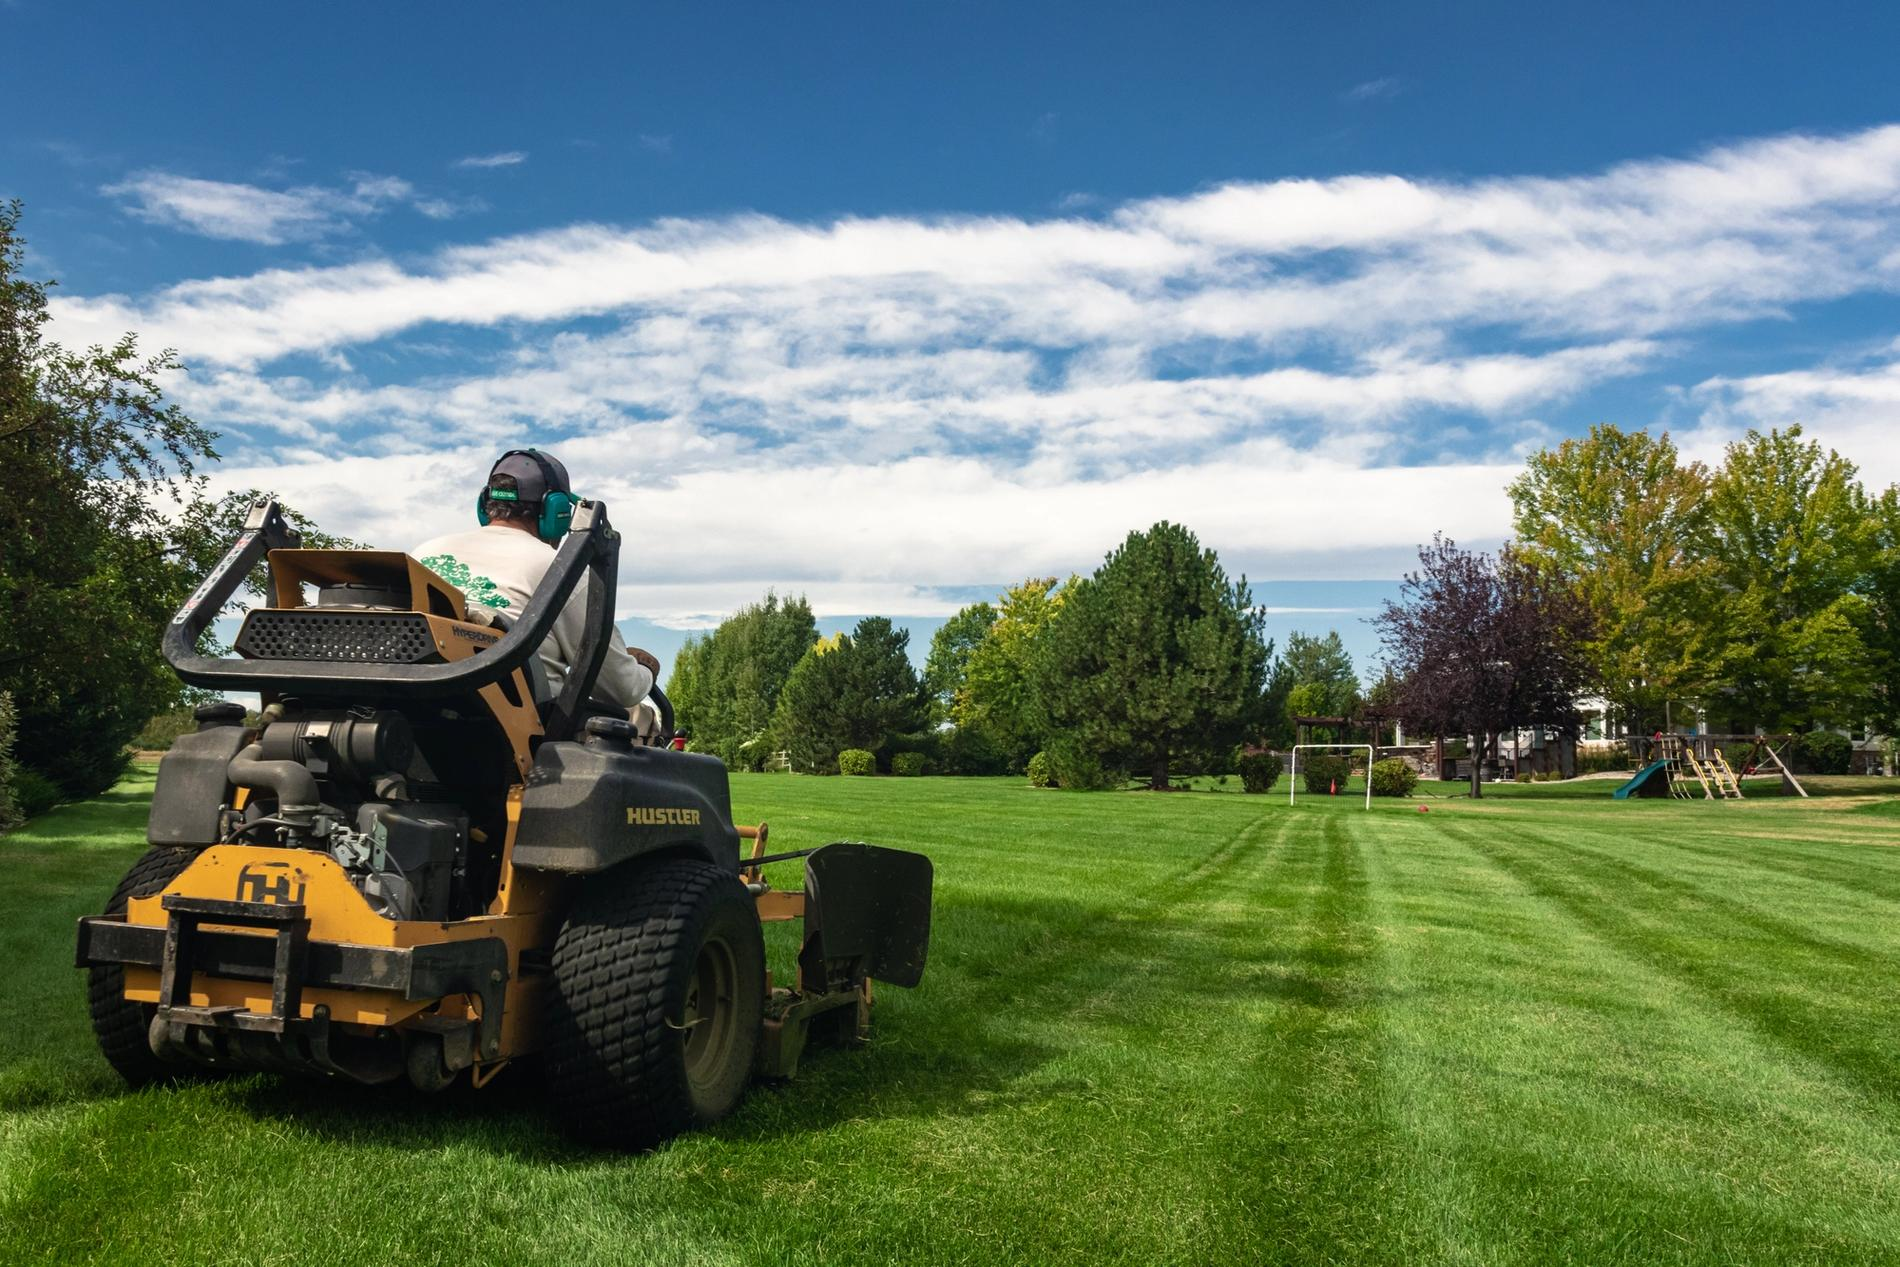 Mowing lawns with perfect lines